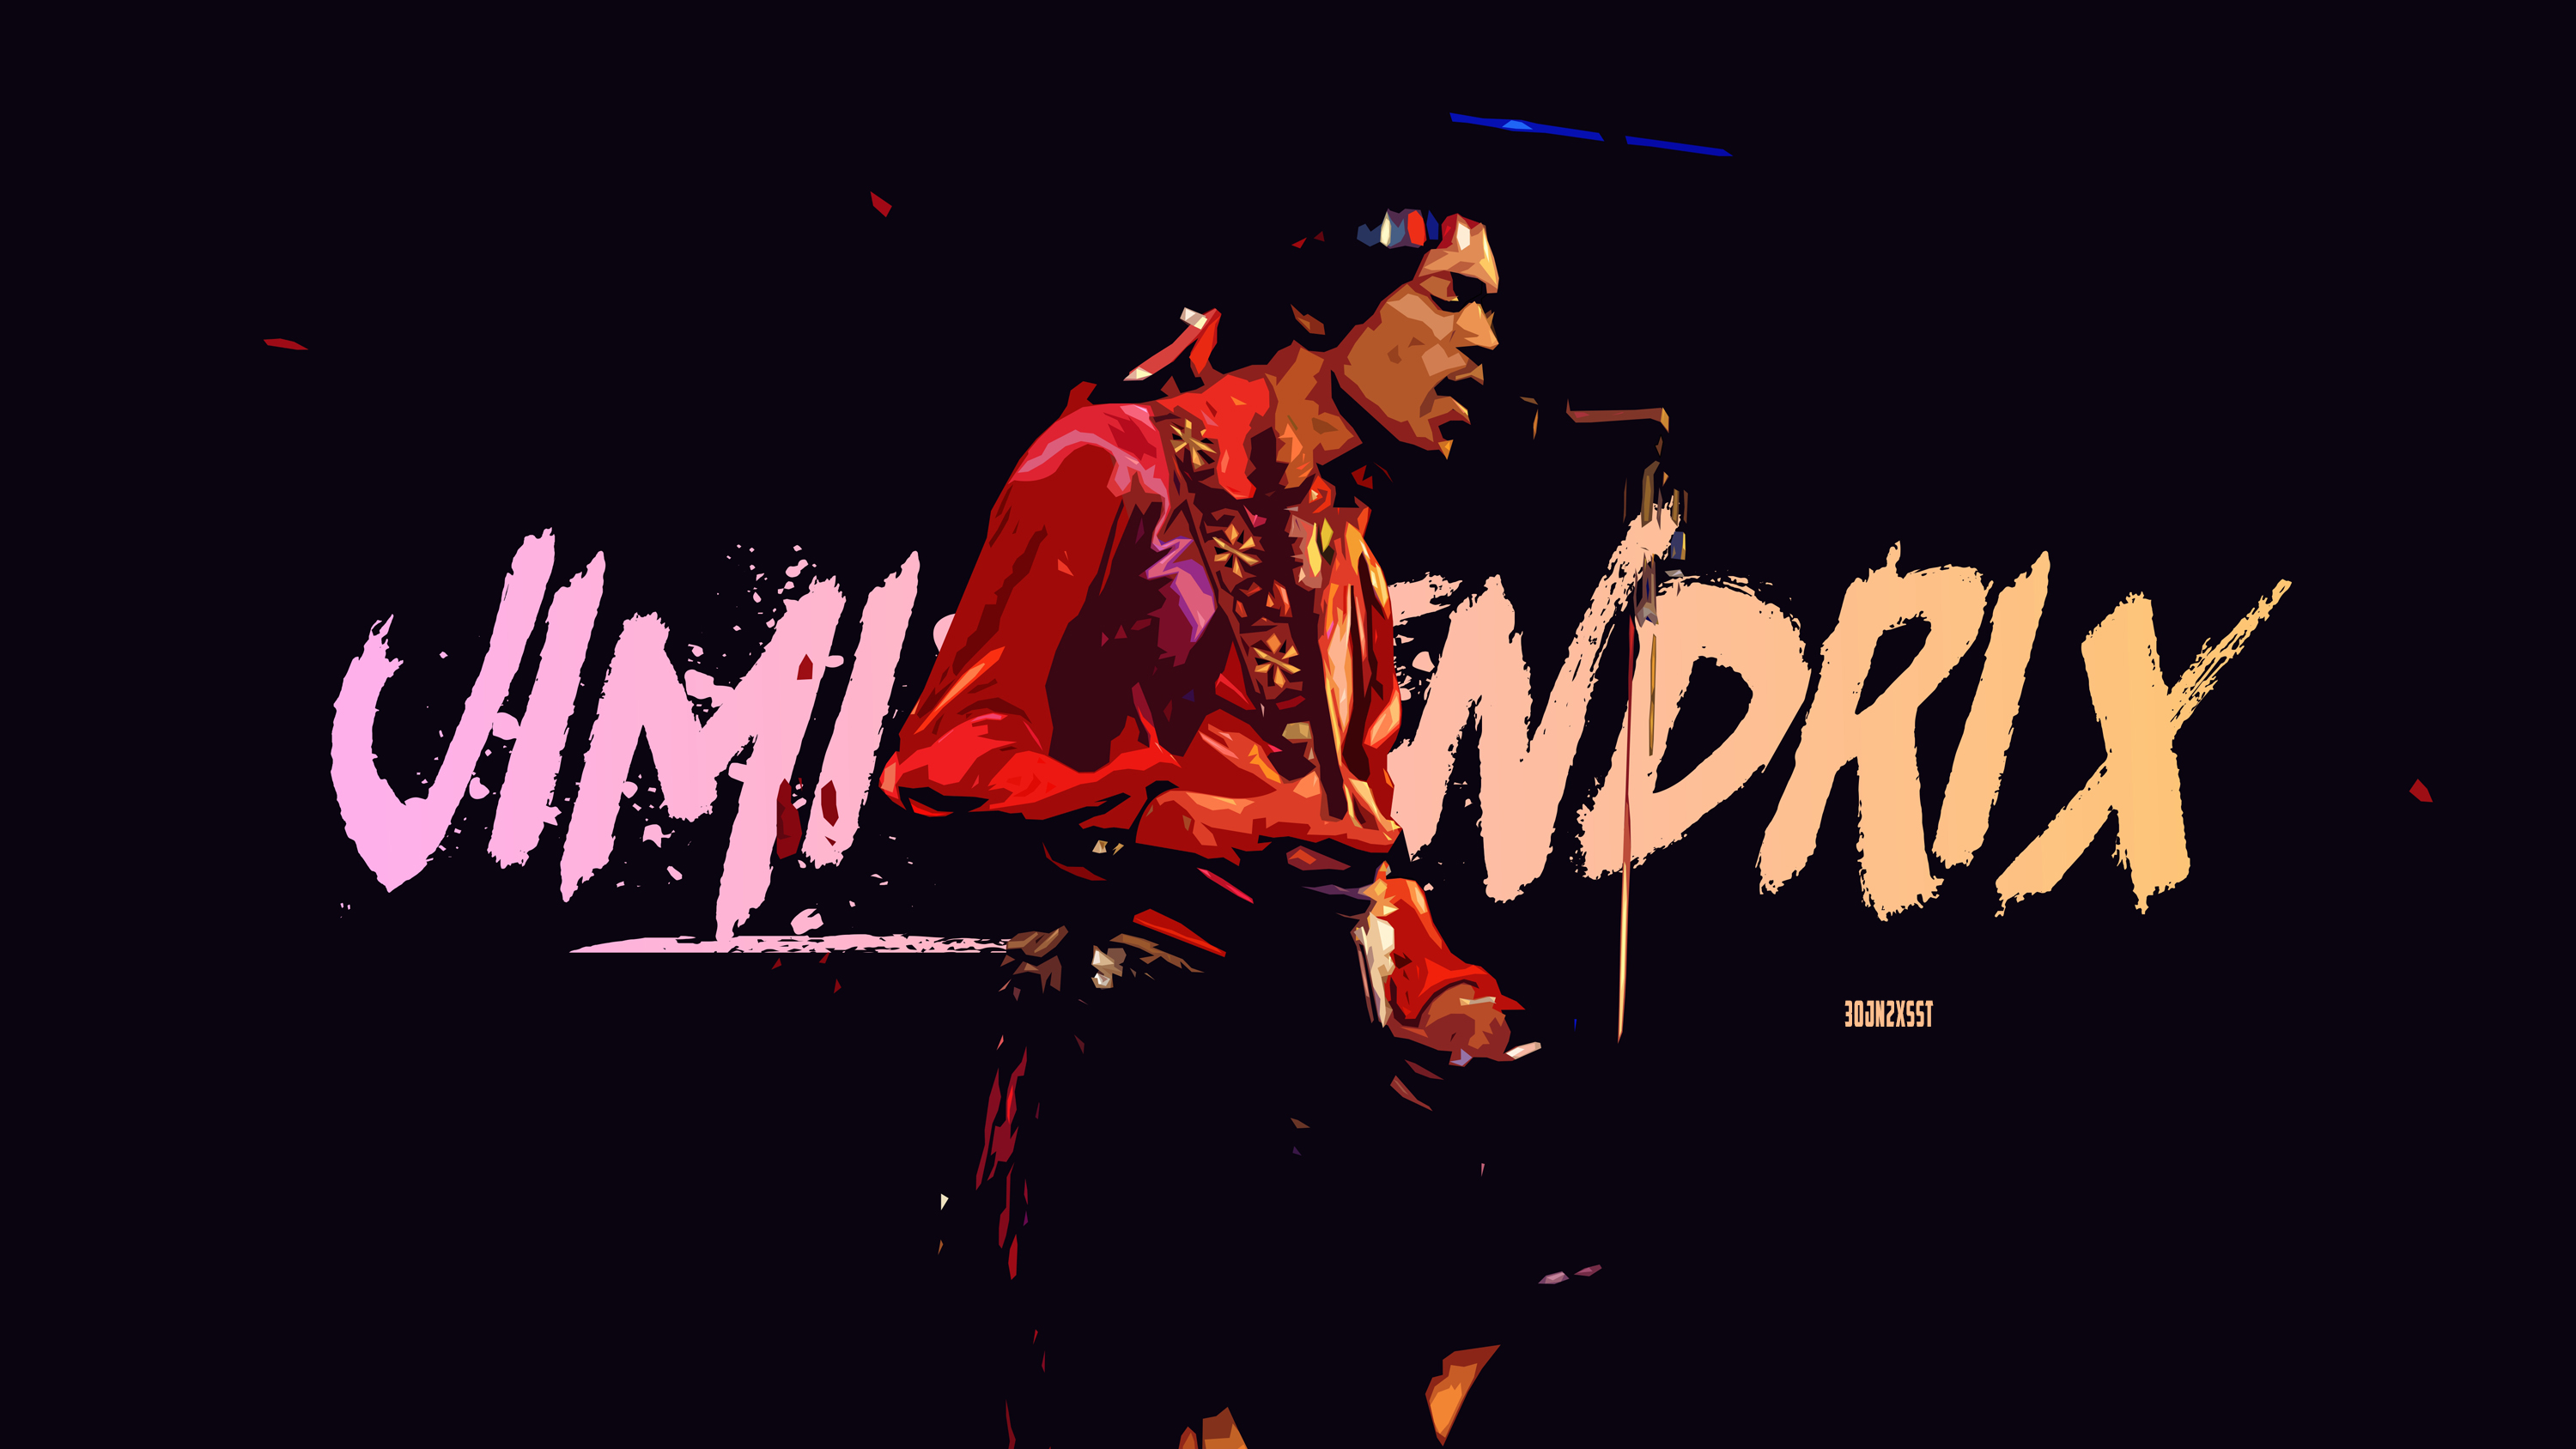 Jimi Hendrix Wallpapers, Pictures, Images